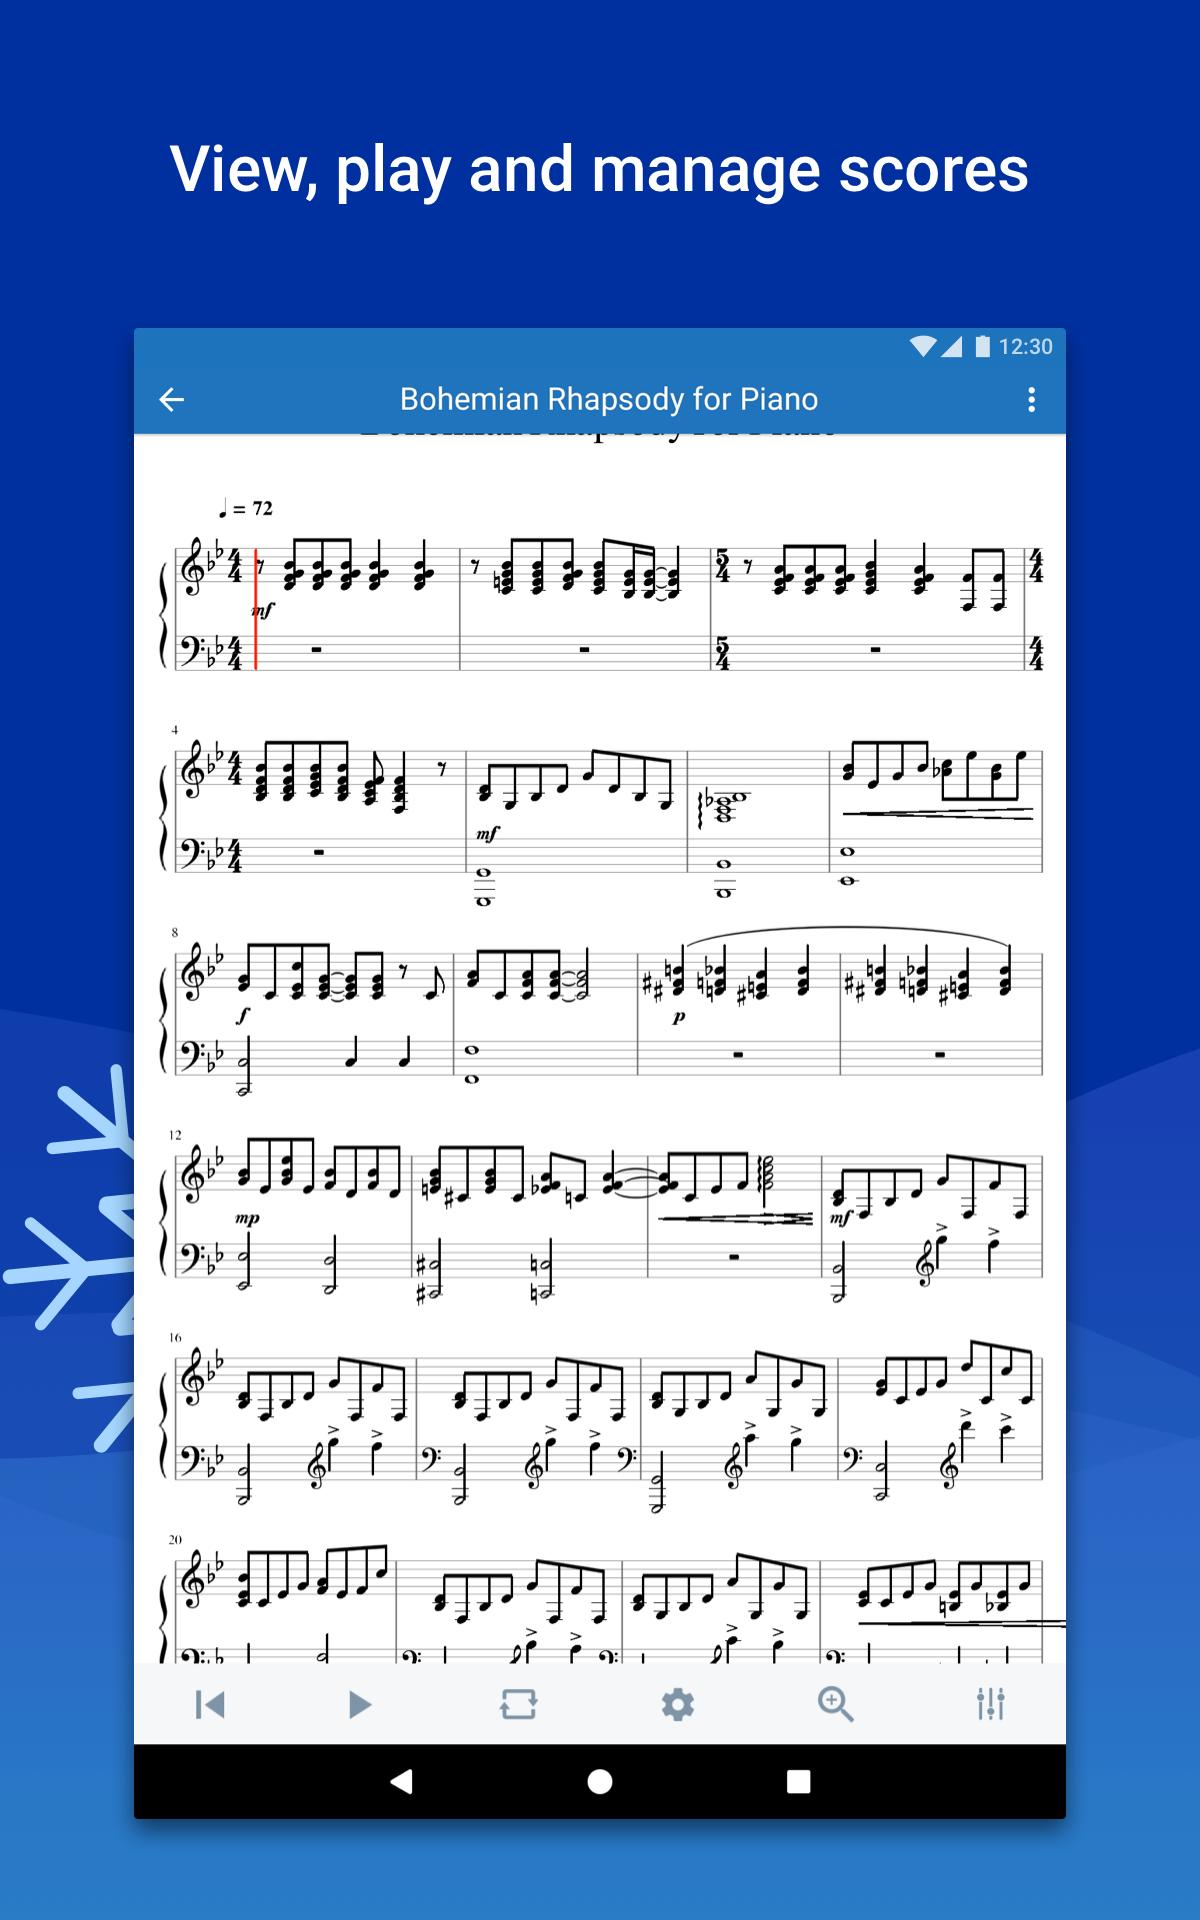 Musescore view and play sheet music 2.4.30 Screenshot 13